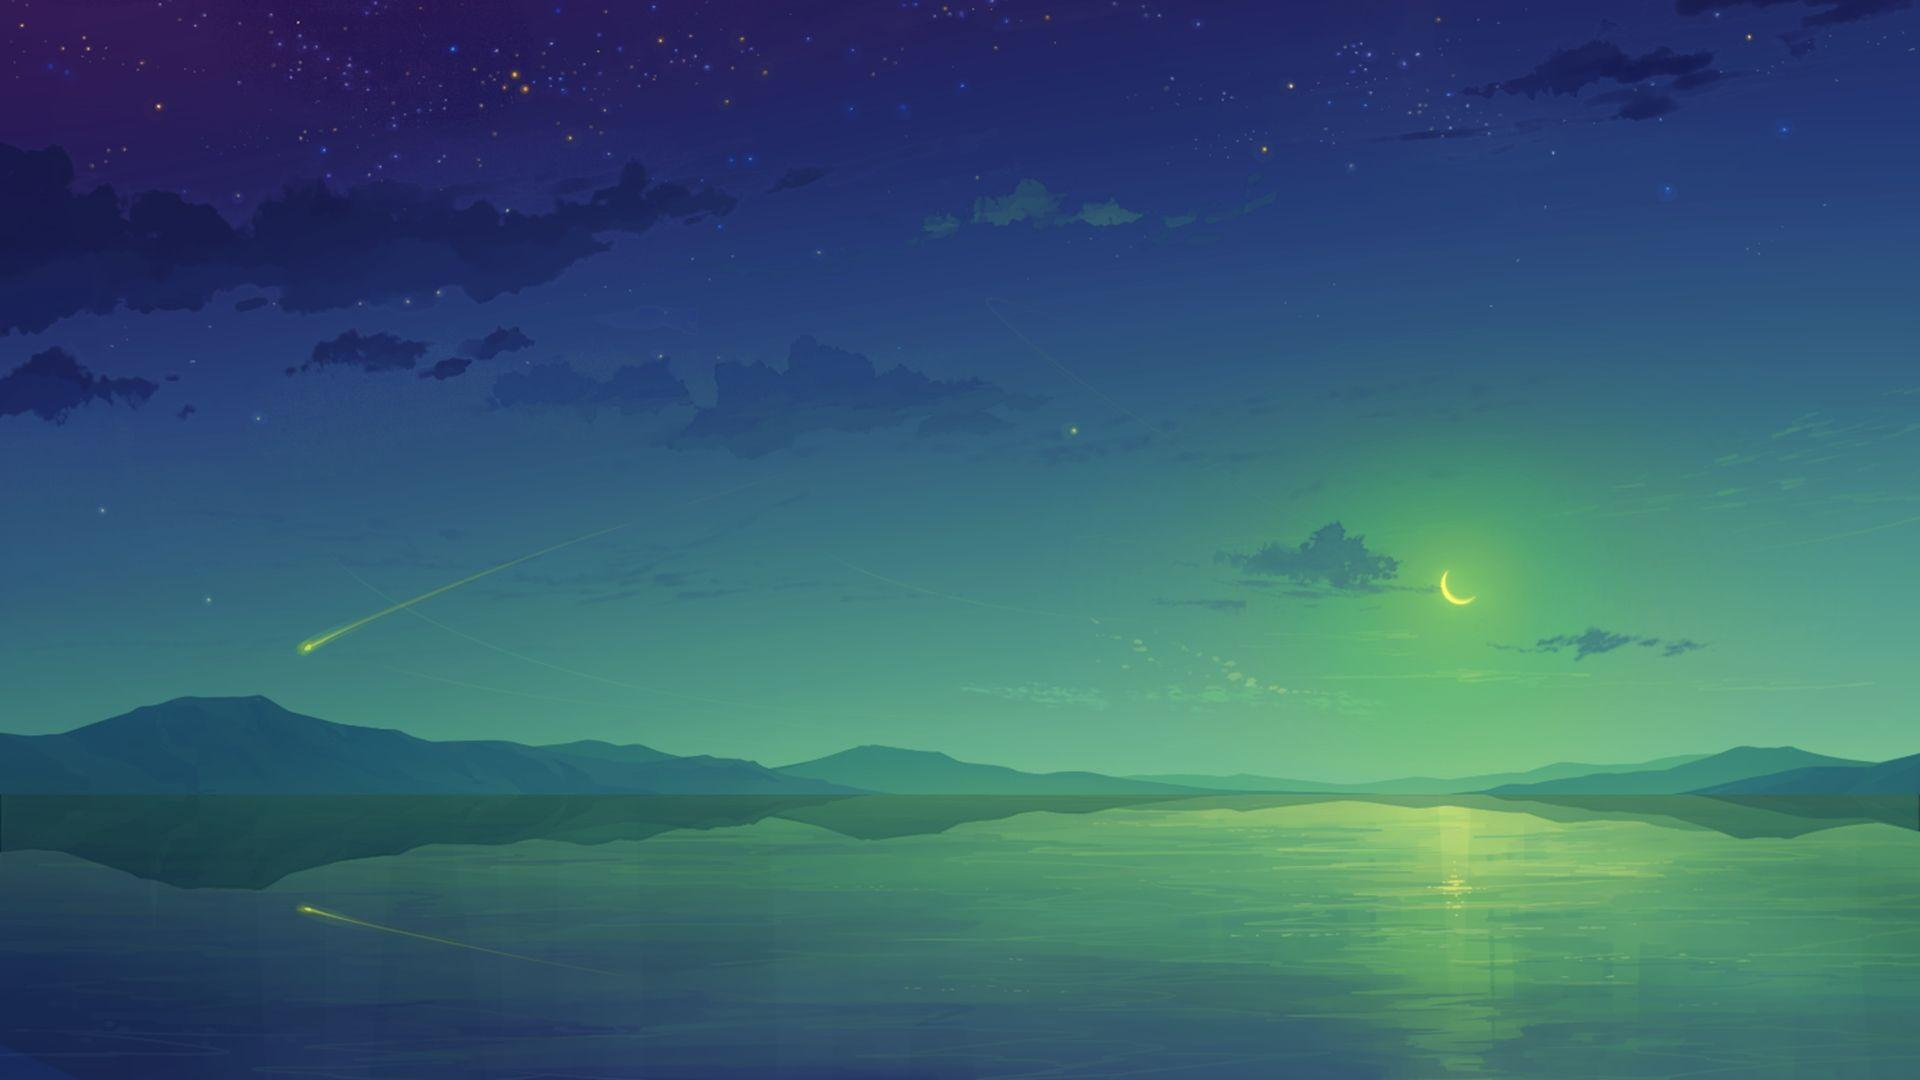 1920x1080 Anime Night Sky Wallpapers - Wallpaper Cave